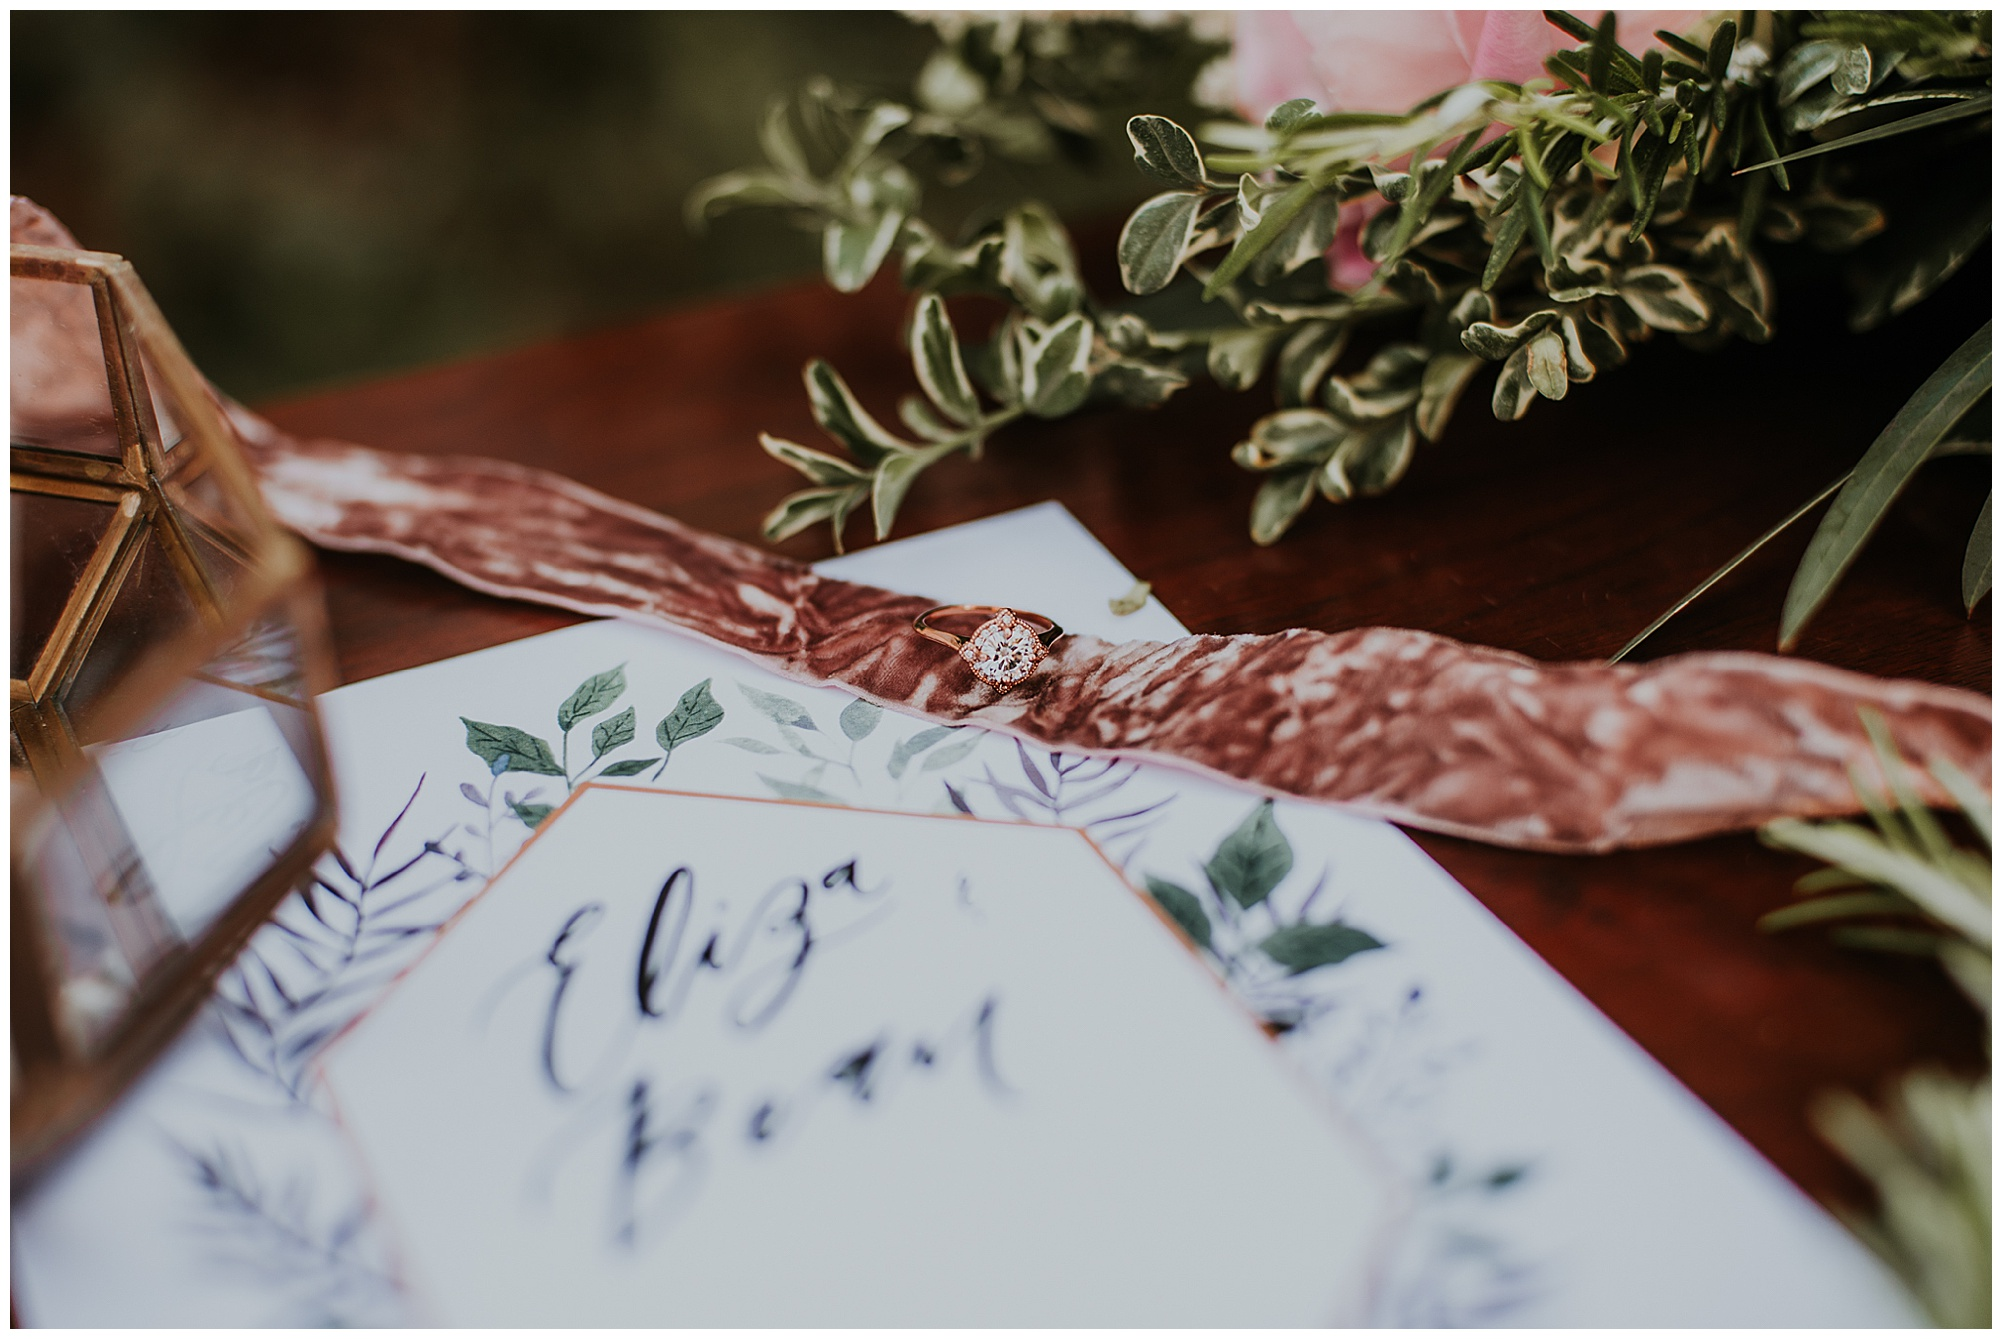 glamorous and boho style wedding theme with velvet ribbon and engagement ring at chanceford hall bed and breakfast. wedding ring and wedding invitation. maryland wedding now featured on my eastern shore wedding.